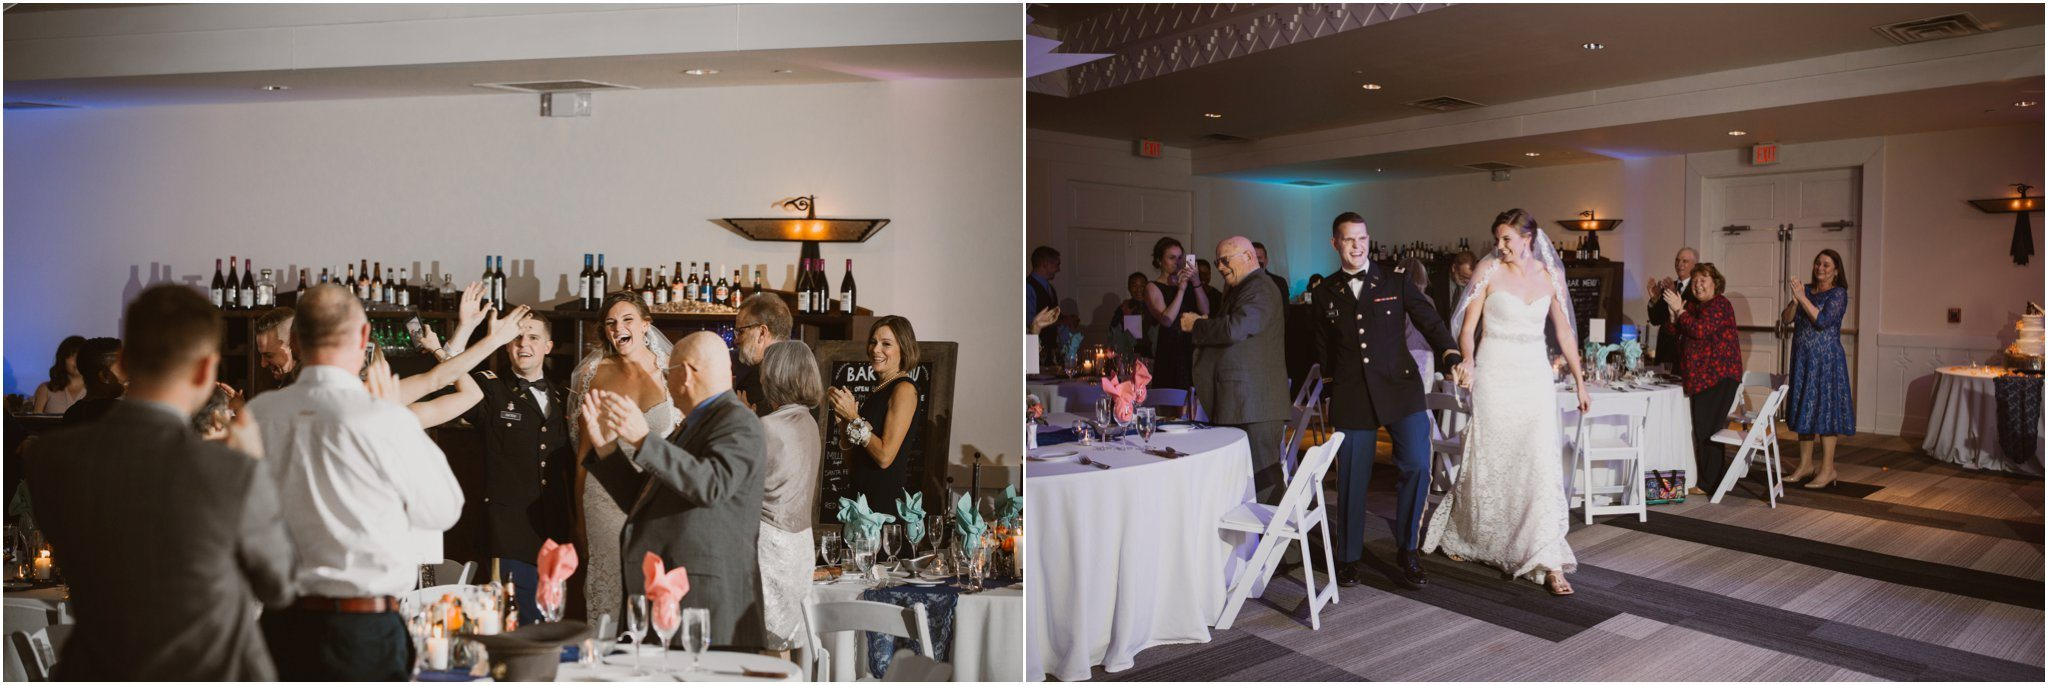 49Blue Rose Photography_ Albuquerque Wedding Photographer_ Santa Fe Wedding Photographers